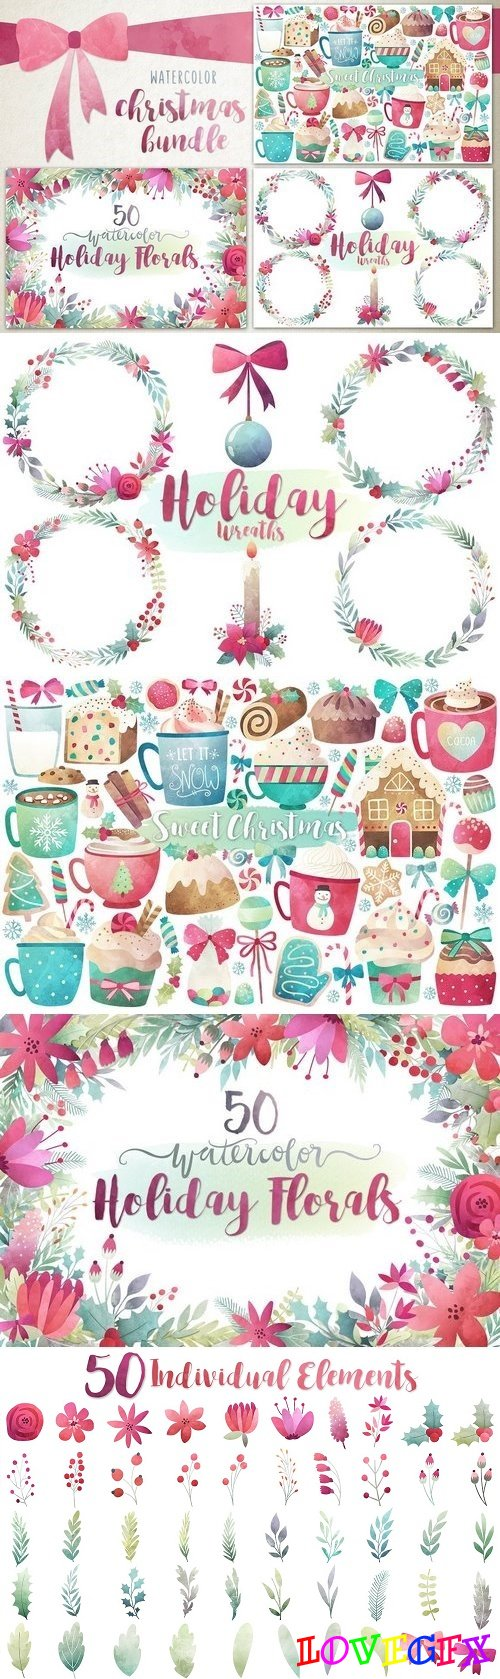 Watercolor Christmas Bundle - 1058759